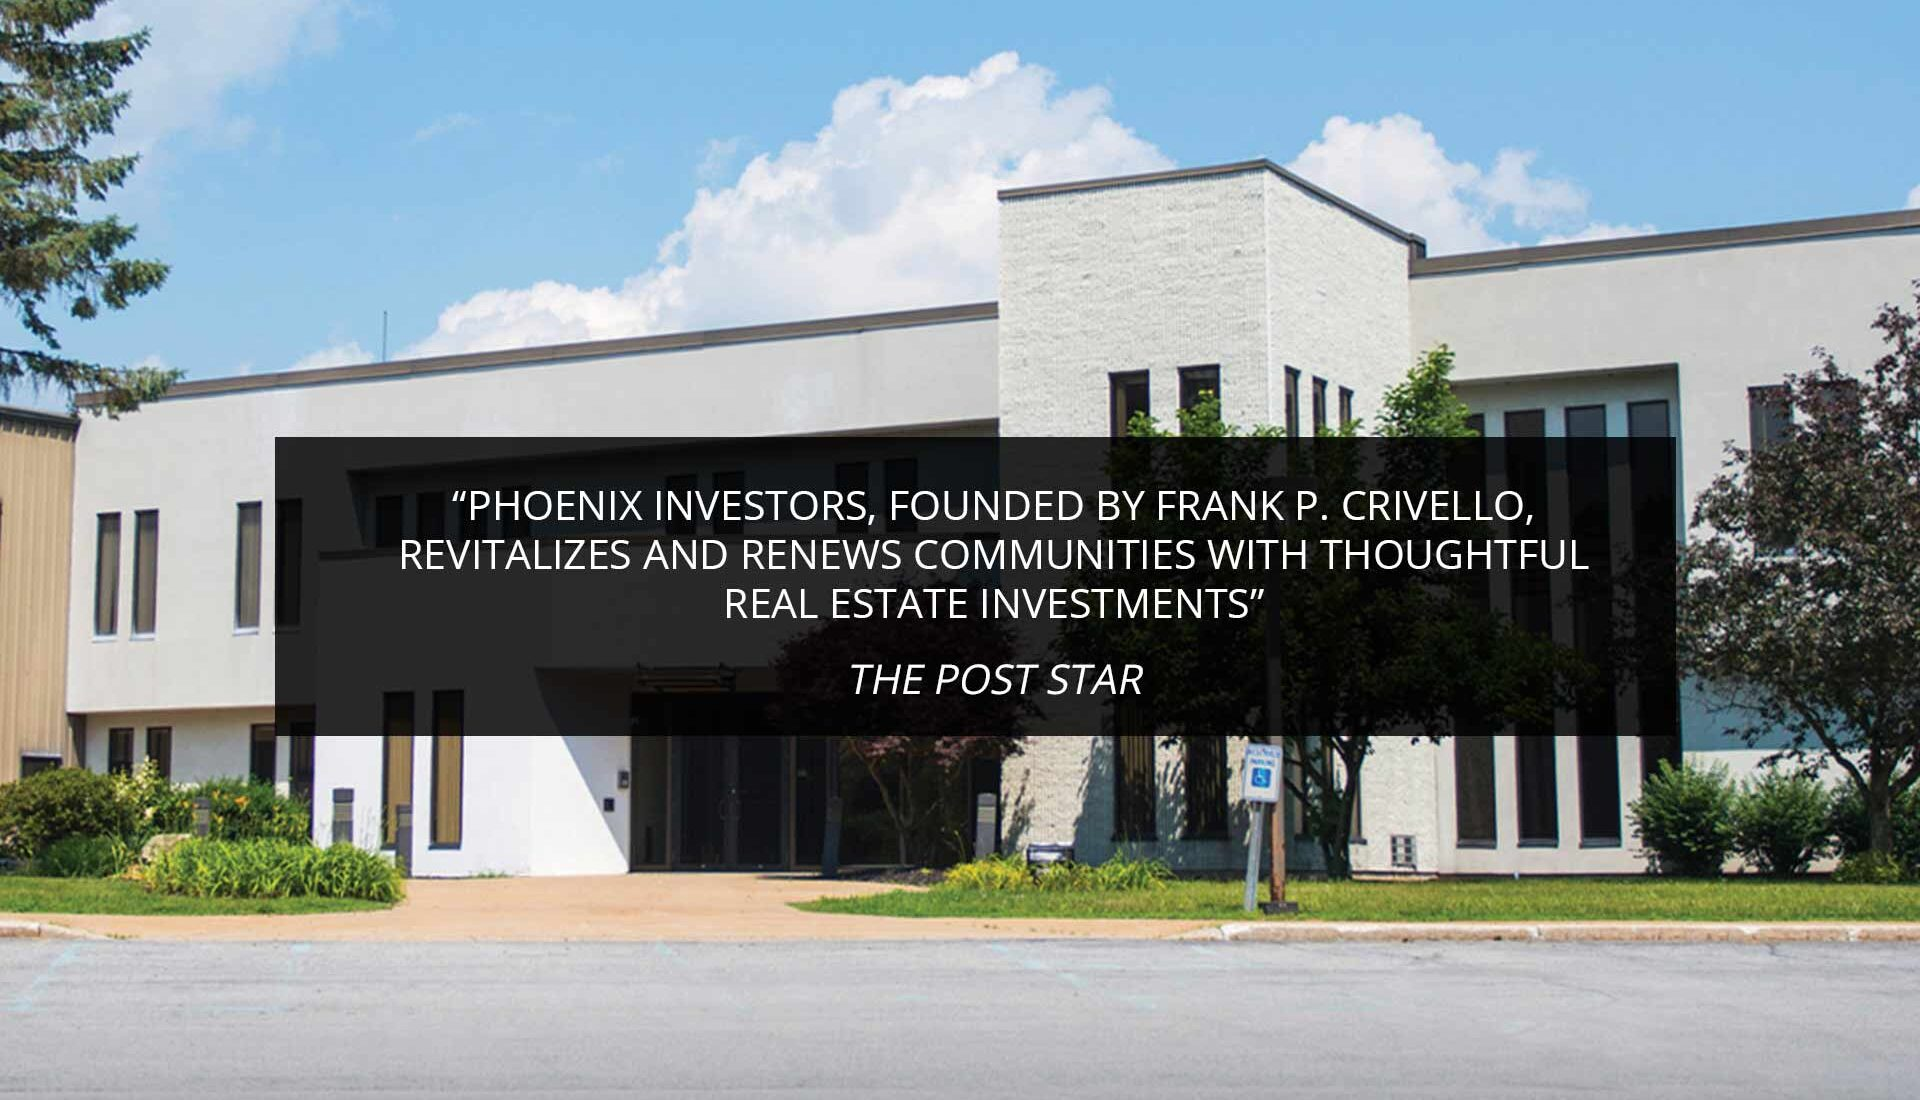 Phoenix Investors, founded by Frank P. Crivello, revitalizes and renews communities with thoughtful real estate investments